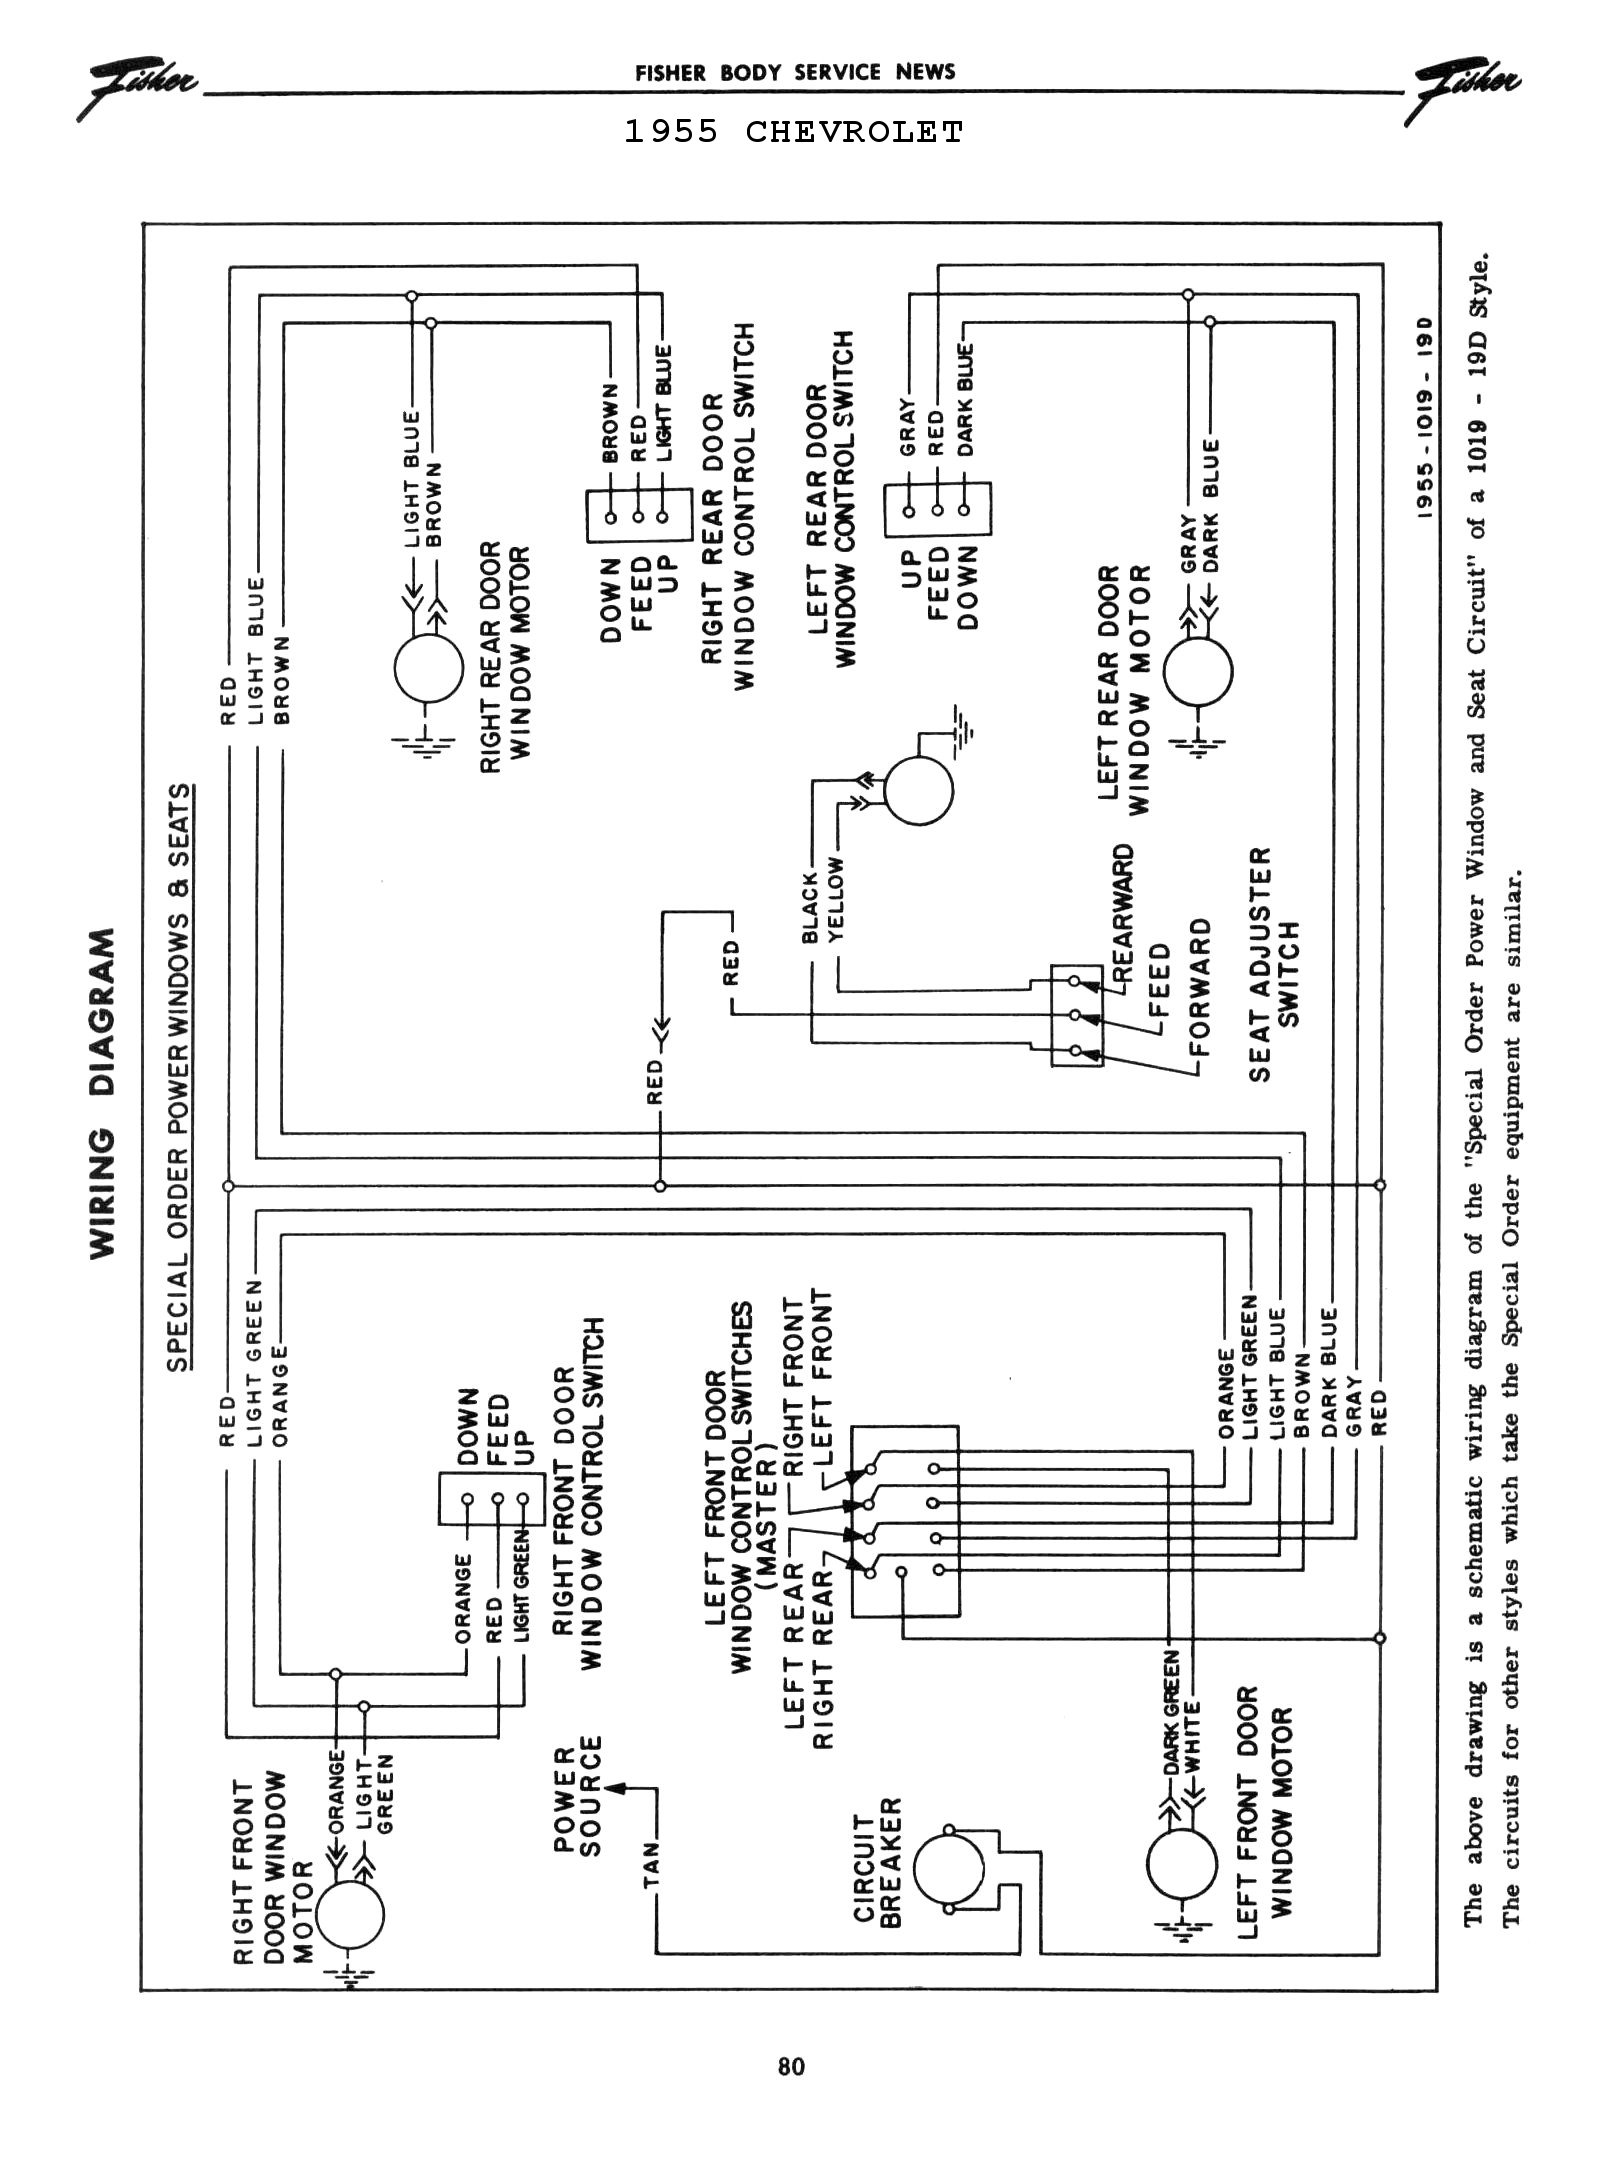 Chevy Wiring Diagrams Panel From Tail Light Diagram Lights Fuse To 1975 1955 Power Windows Seats 2